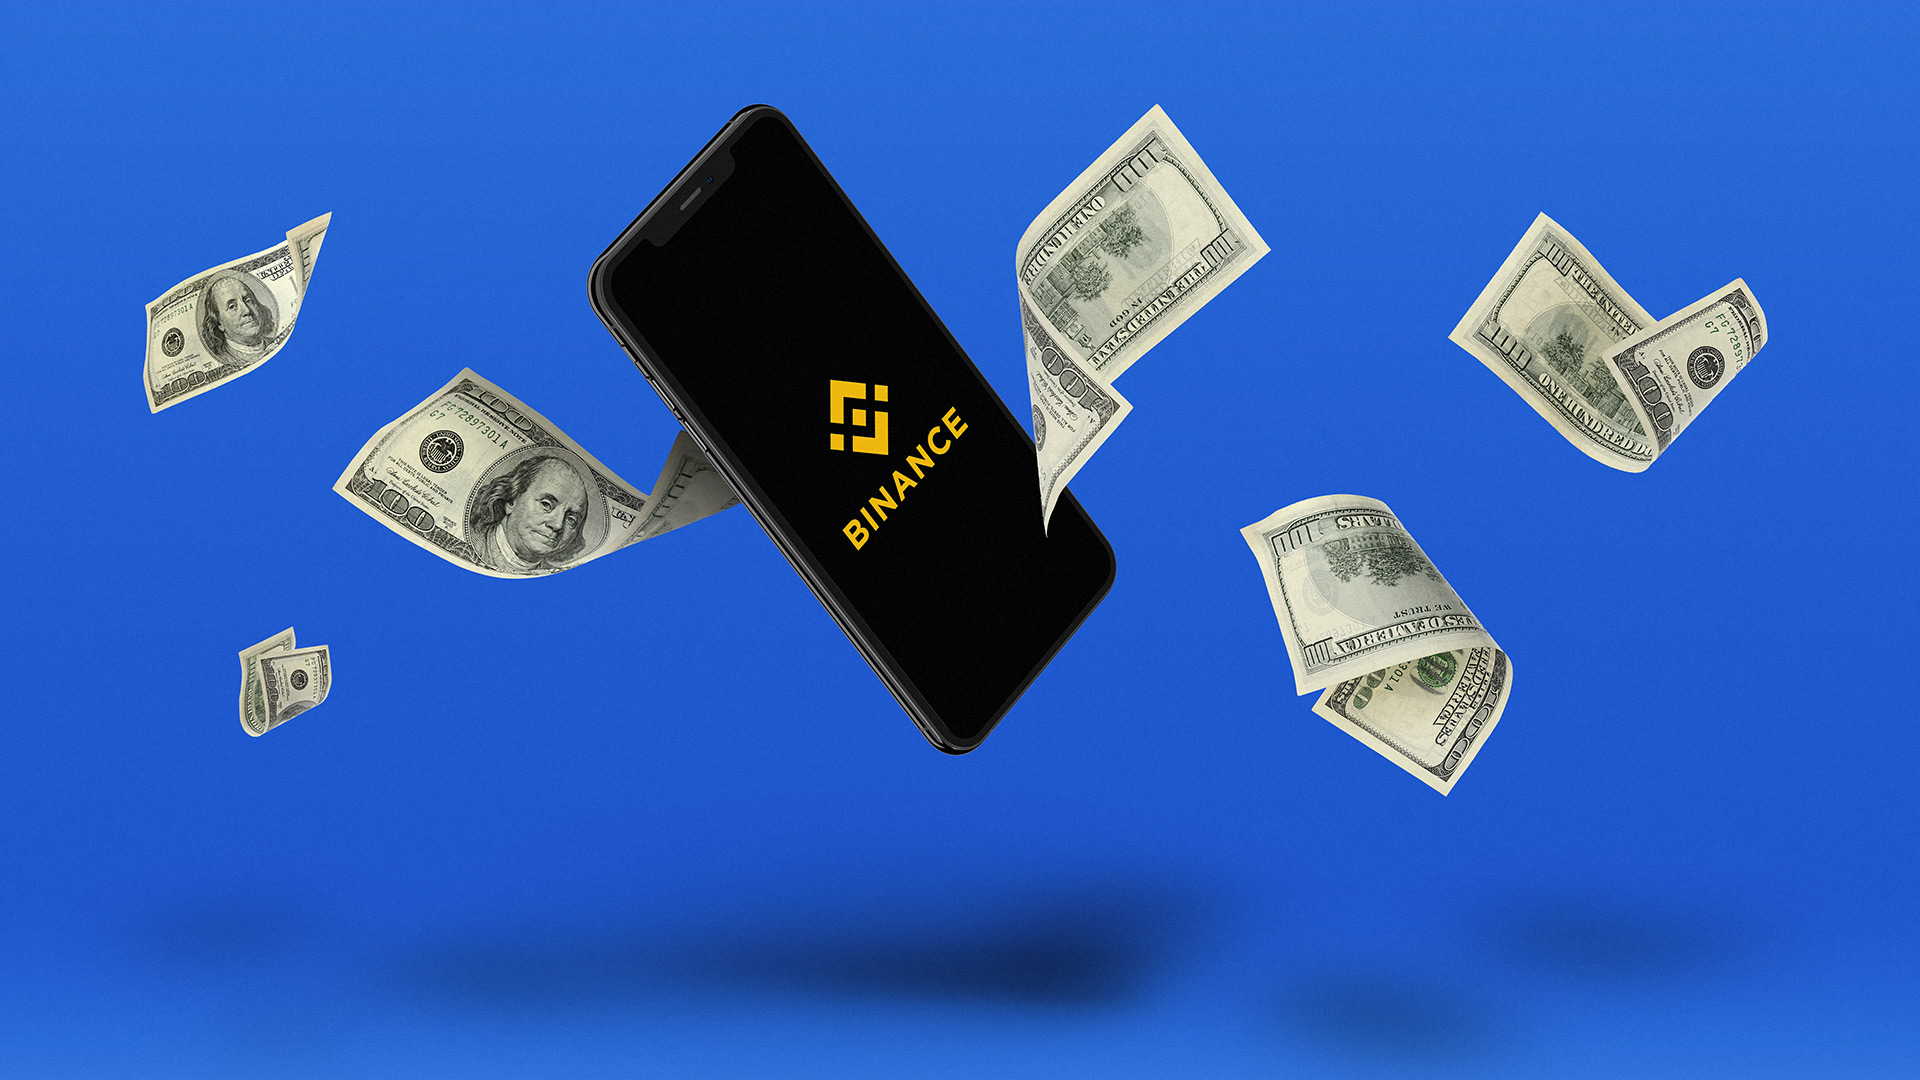 Binance US considers listing 30 cryptocurrencies, including BNB - The Block